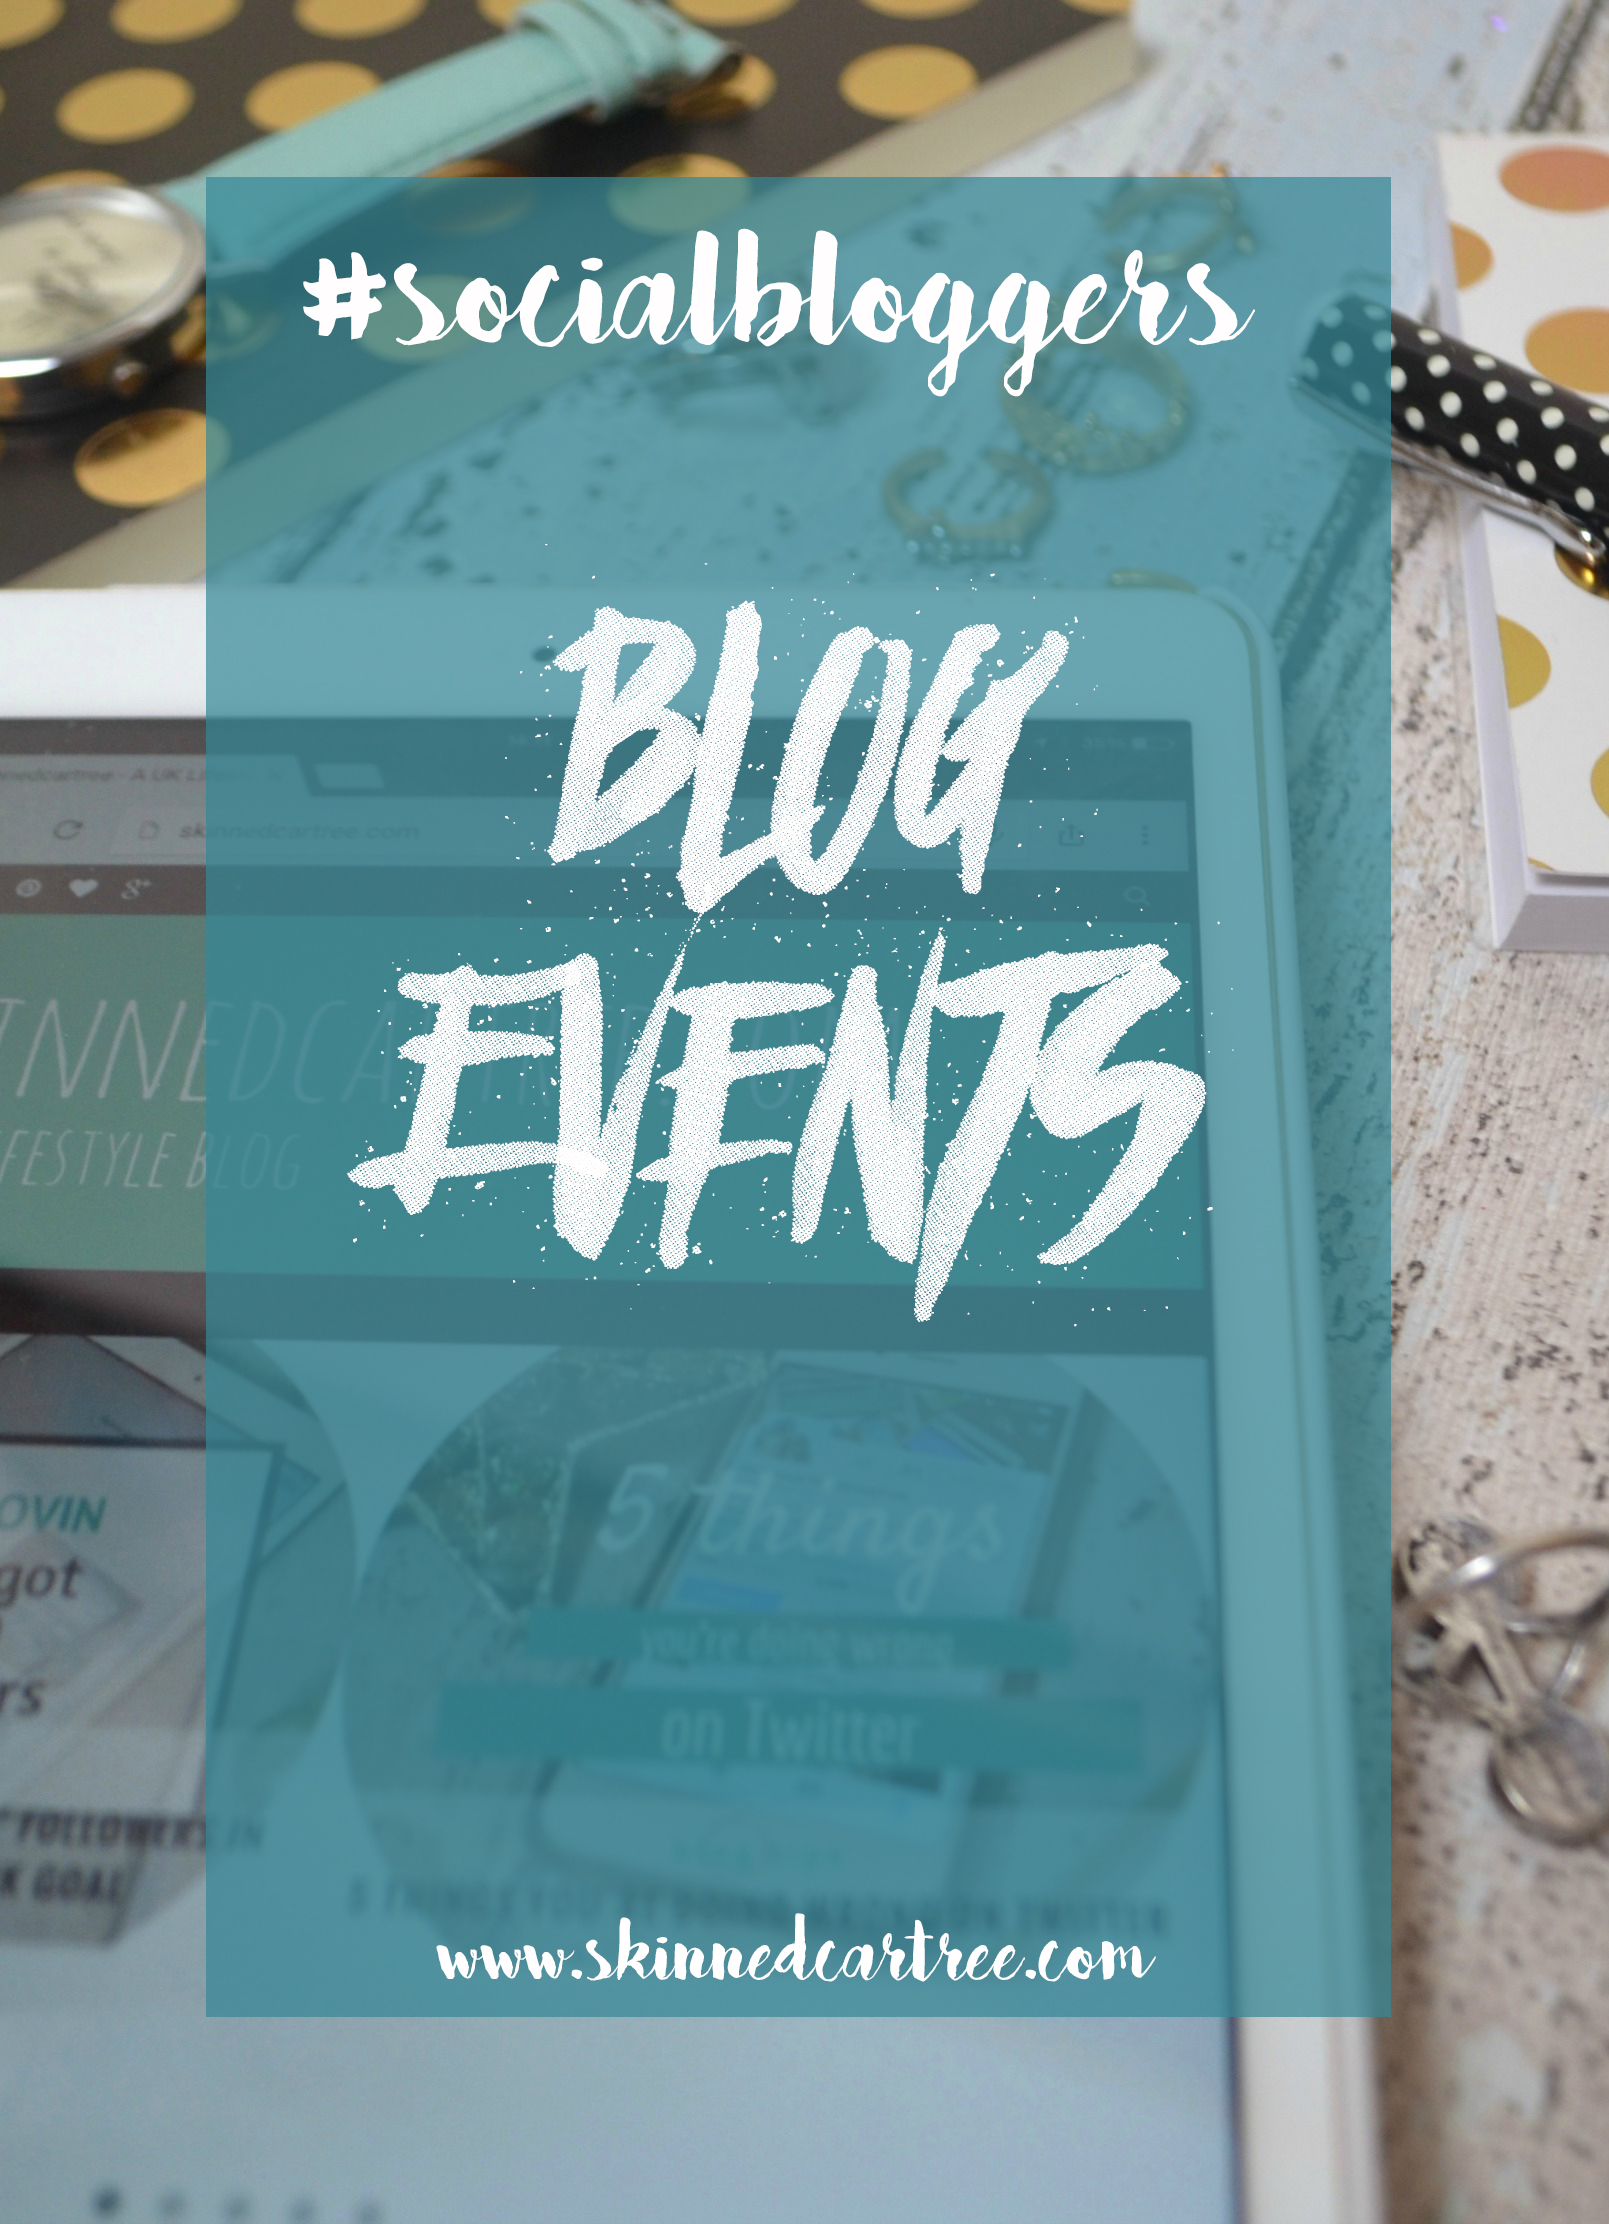 #socialbloggers weekly Twitter chat about going to blog events and how to prepare for blog events